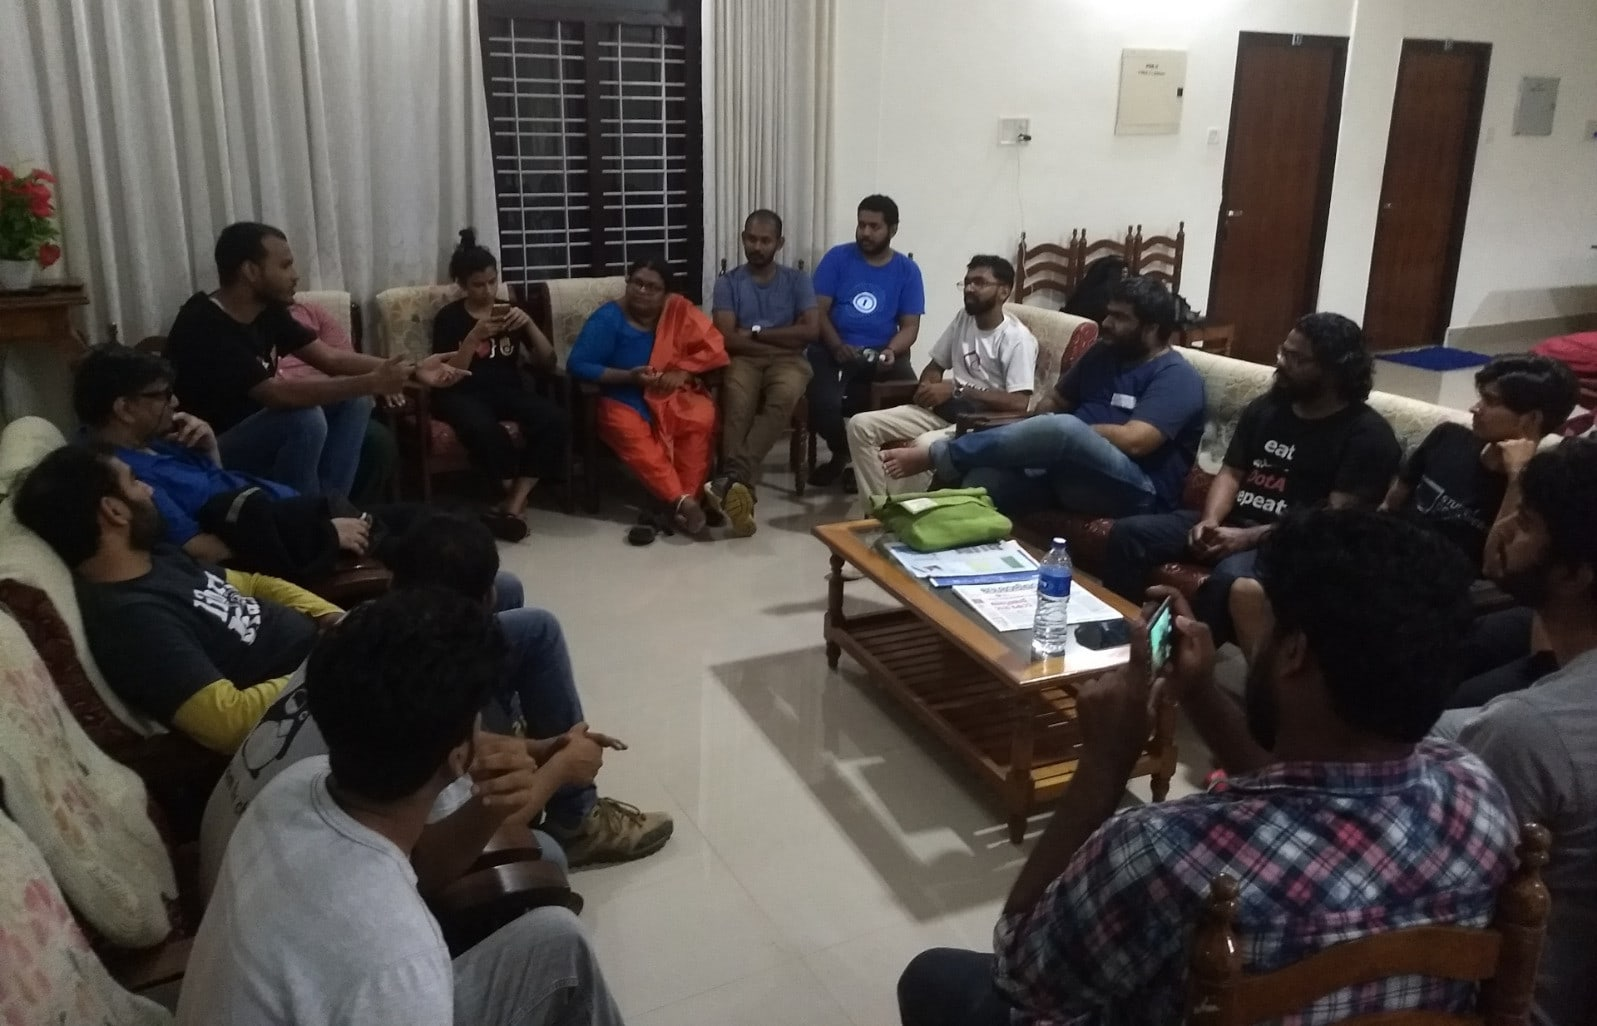 Evening session on 1st evening at CUSAT guesthouse